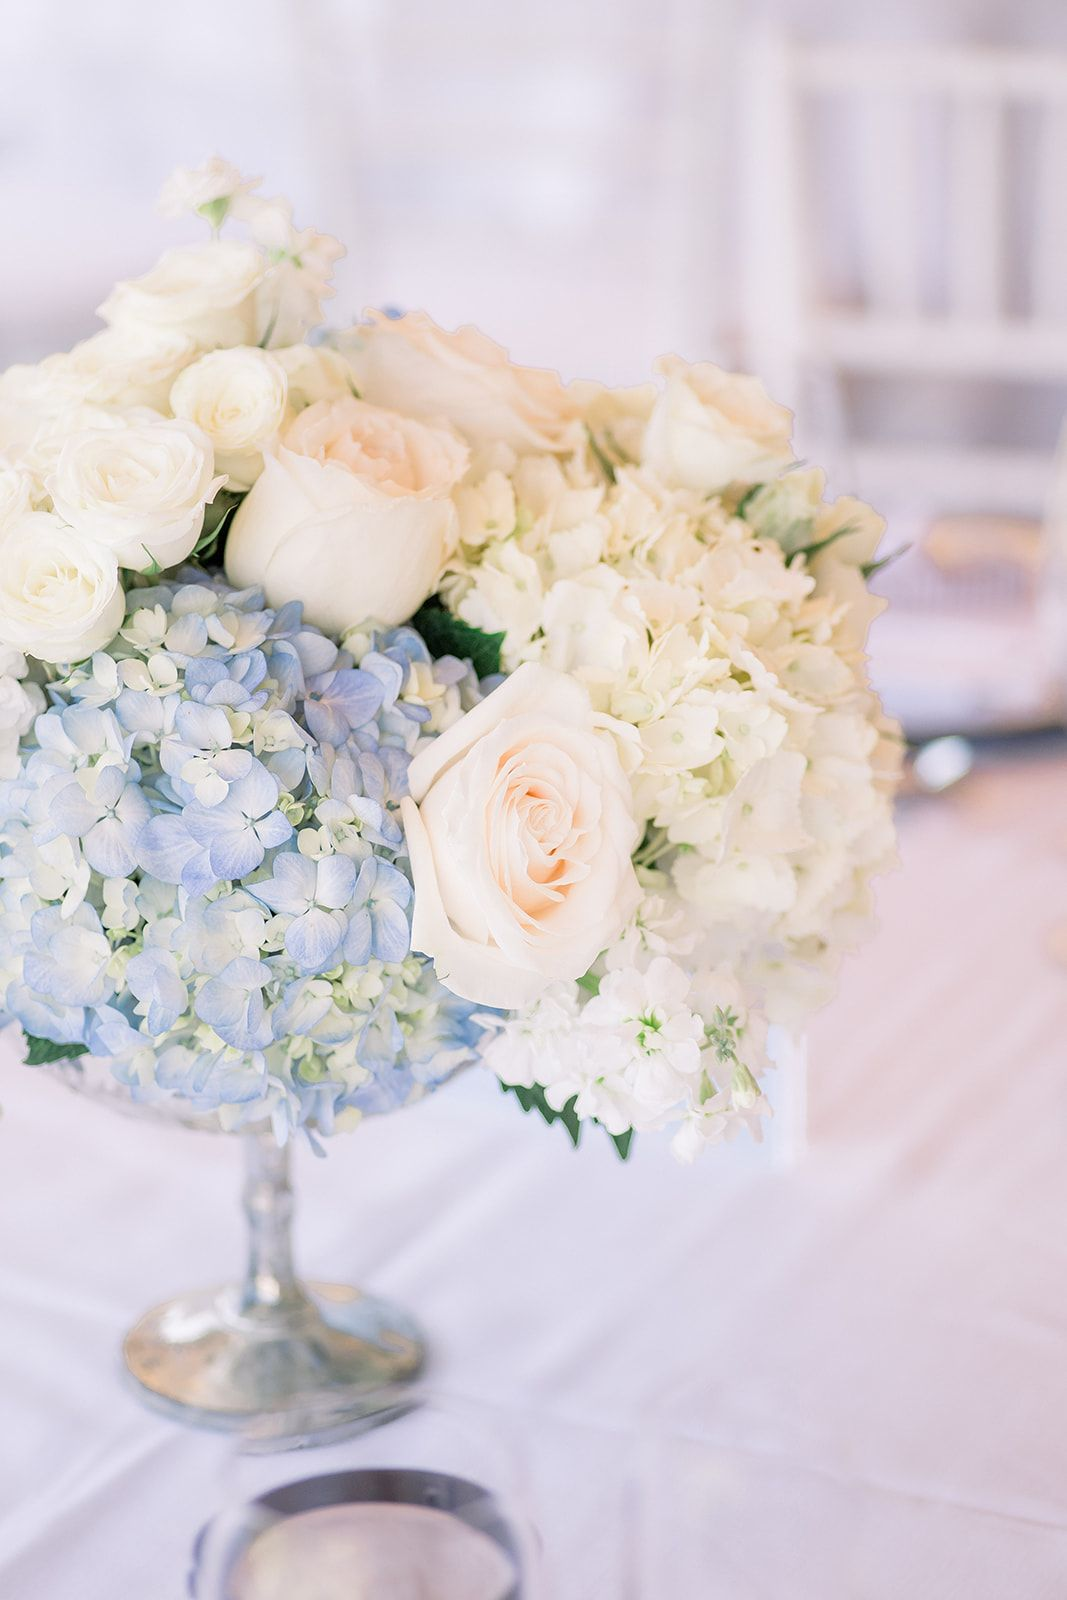 Blue And White Centerpiece Hydrangea Roses And Stock Classic Nantucket S White Hydrangea Centerpieces Blue Hydrangea Centerpieces White Rose Centerpieces